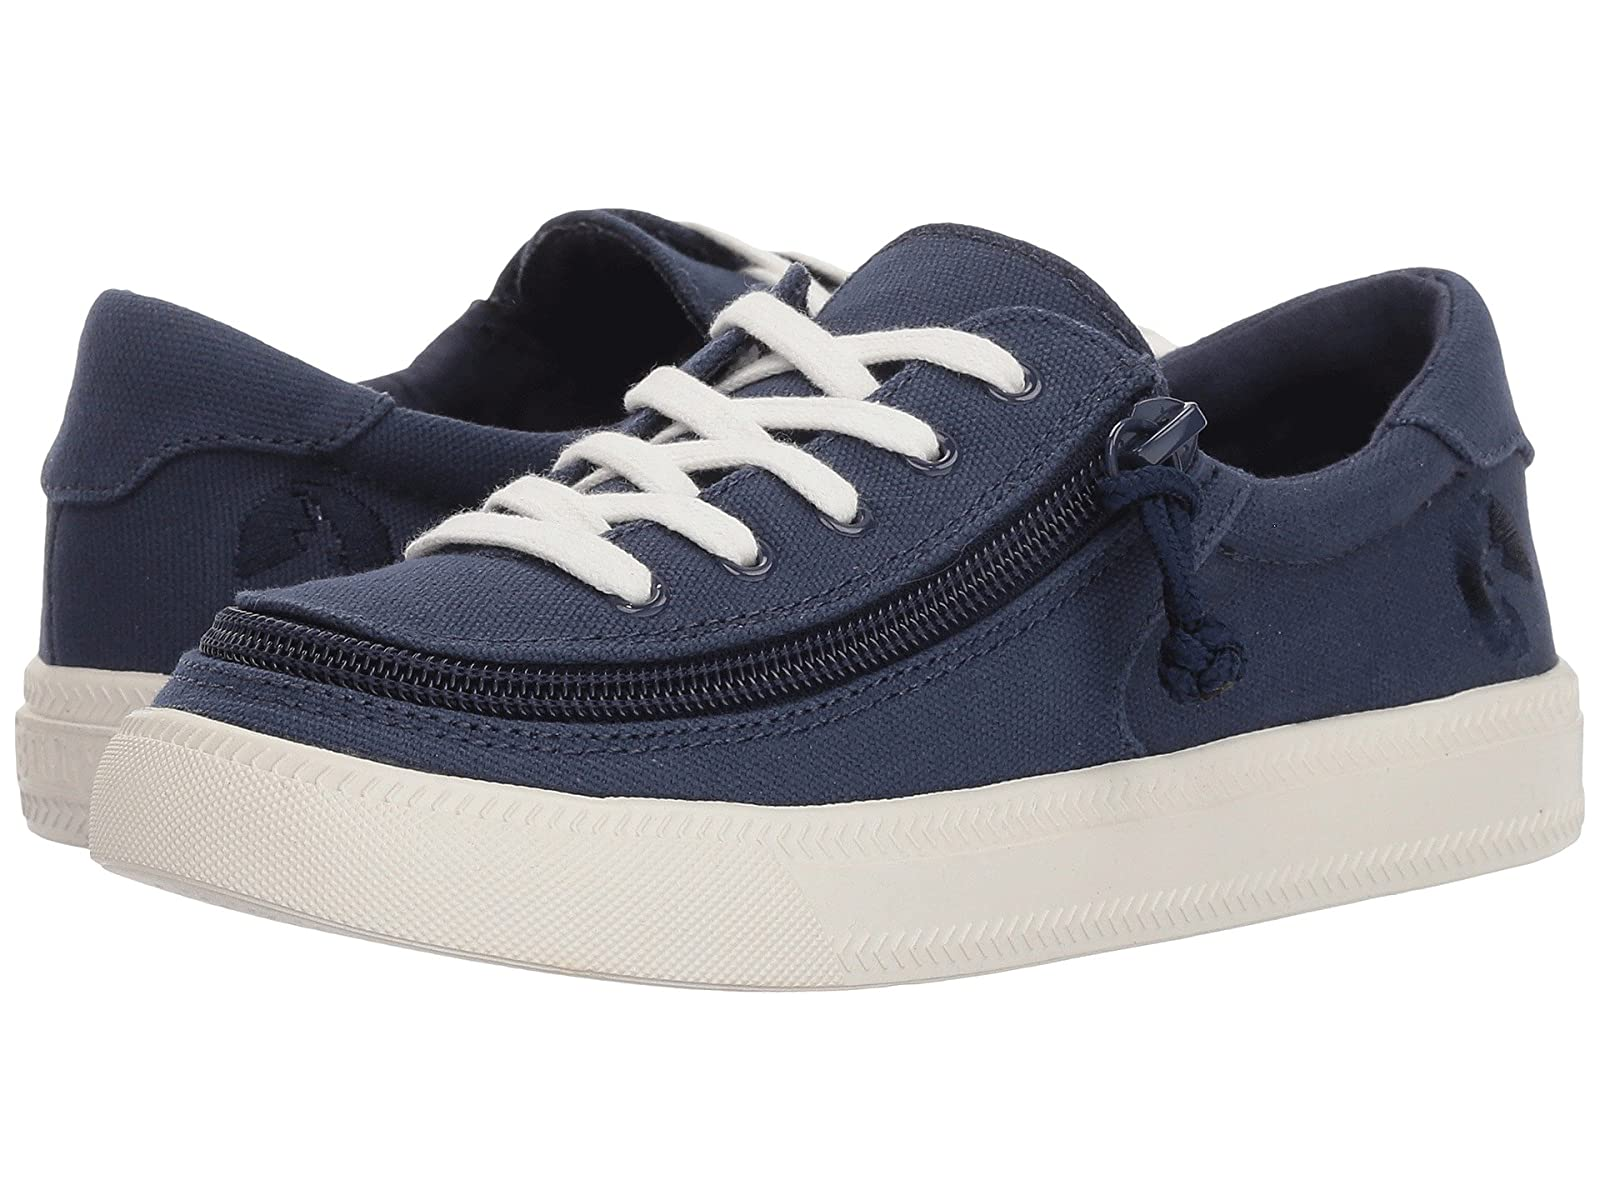 BILLY Footwear Kids Classic Lace Low (Toddler/Little Kid/Big Kid)Atmospheric grades have affordable shoes